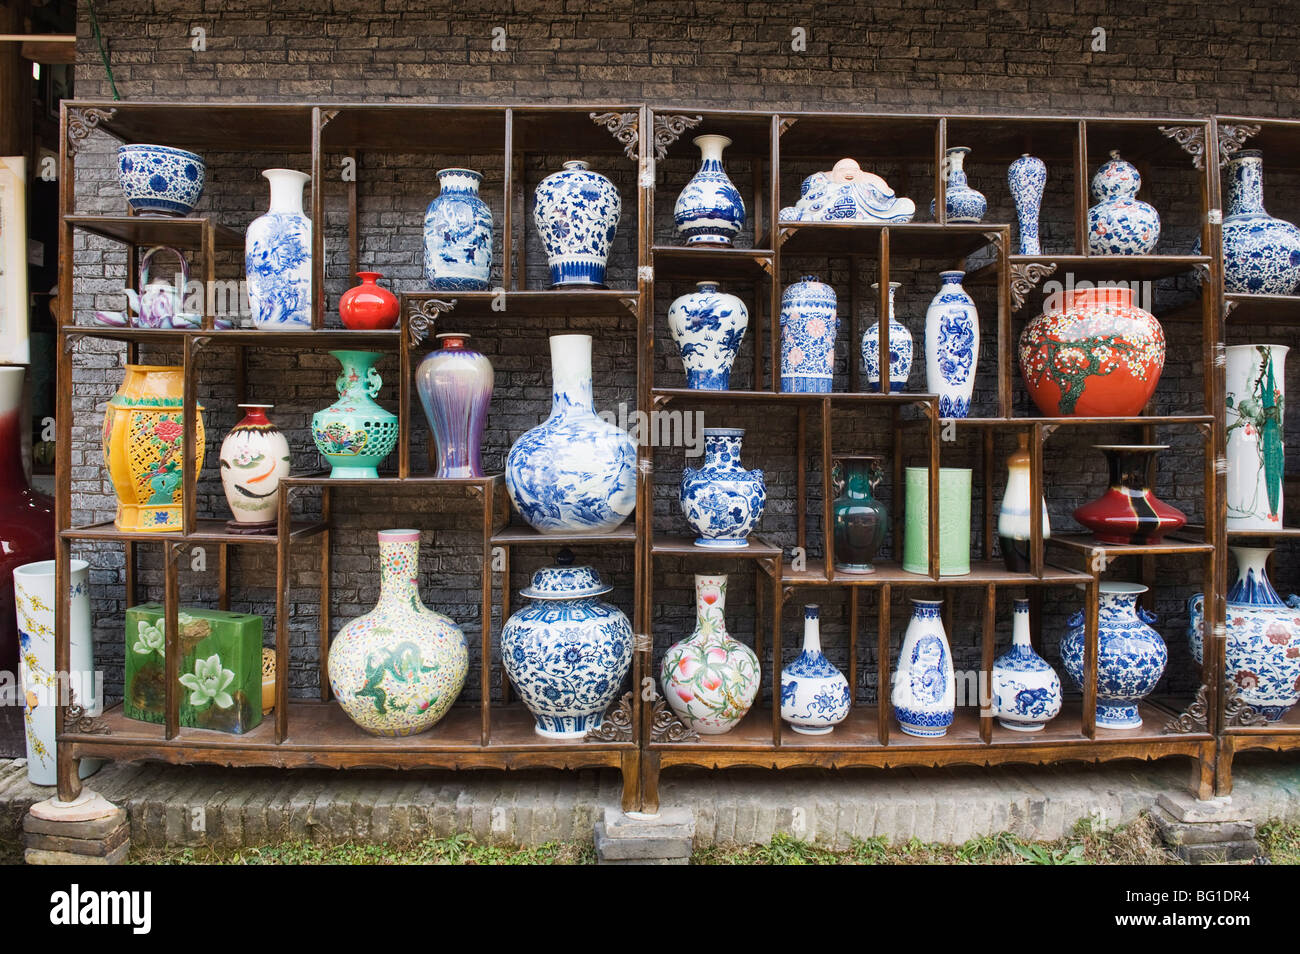 A display of vases at the Qing and Ming Ancient Pottery Factory, Jingdezhen city, Jiangxi Province, China, Asia - Stock Image